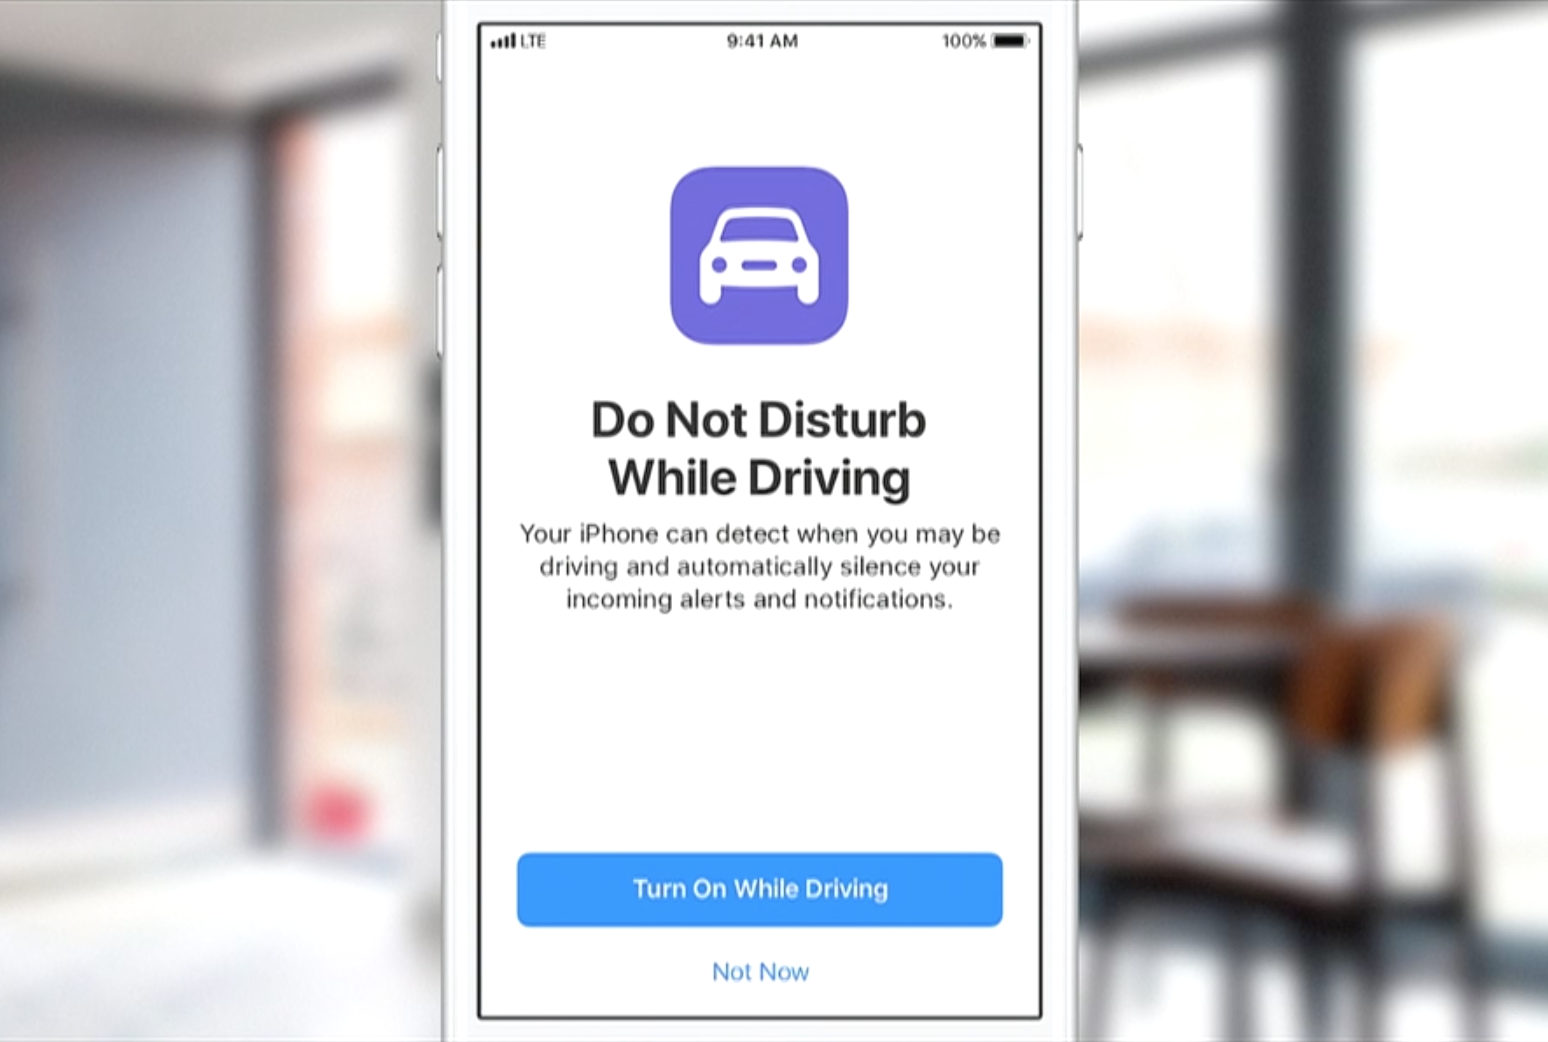 Screen%2BShot%2B2017-06-05%2Bat%2B3.55.19%2BPM Safety In The Car: Apple Bringing New DND Mode While Driving In iOS 11 [WWDC 2018] Technology